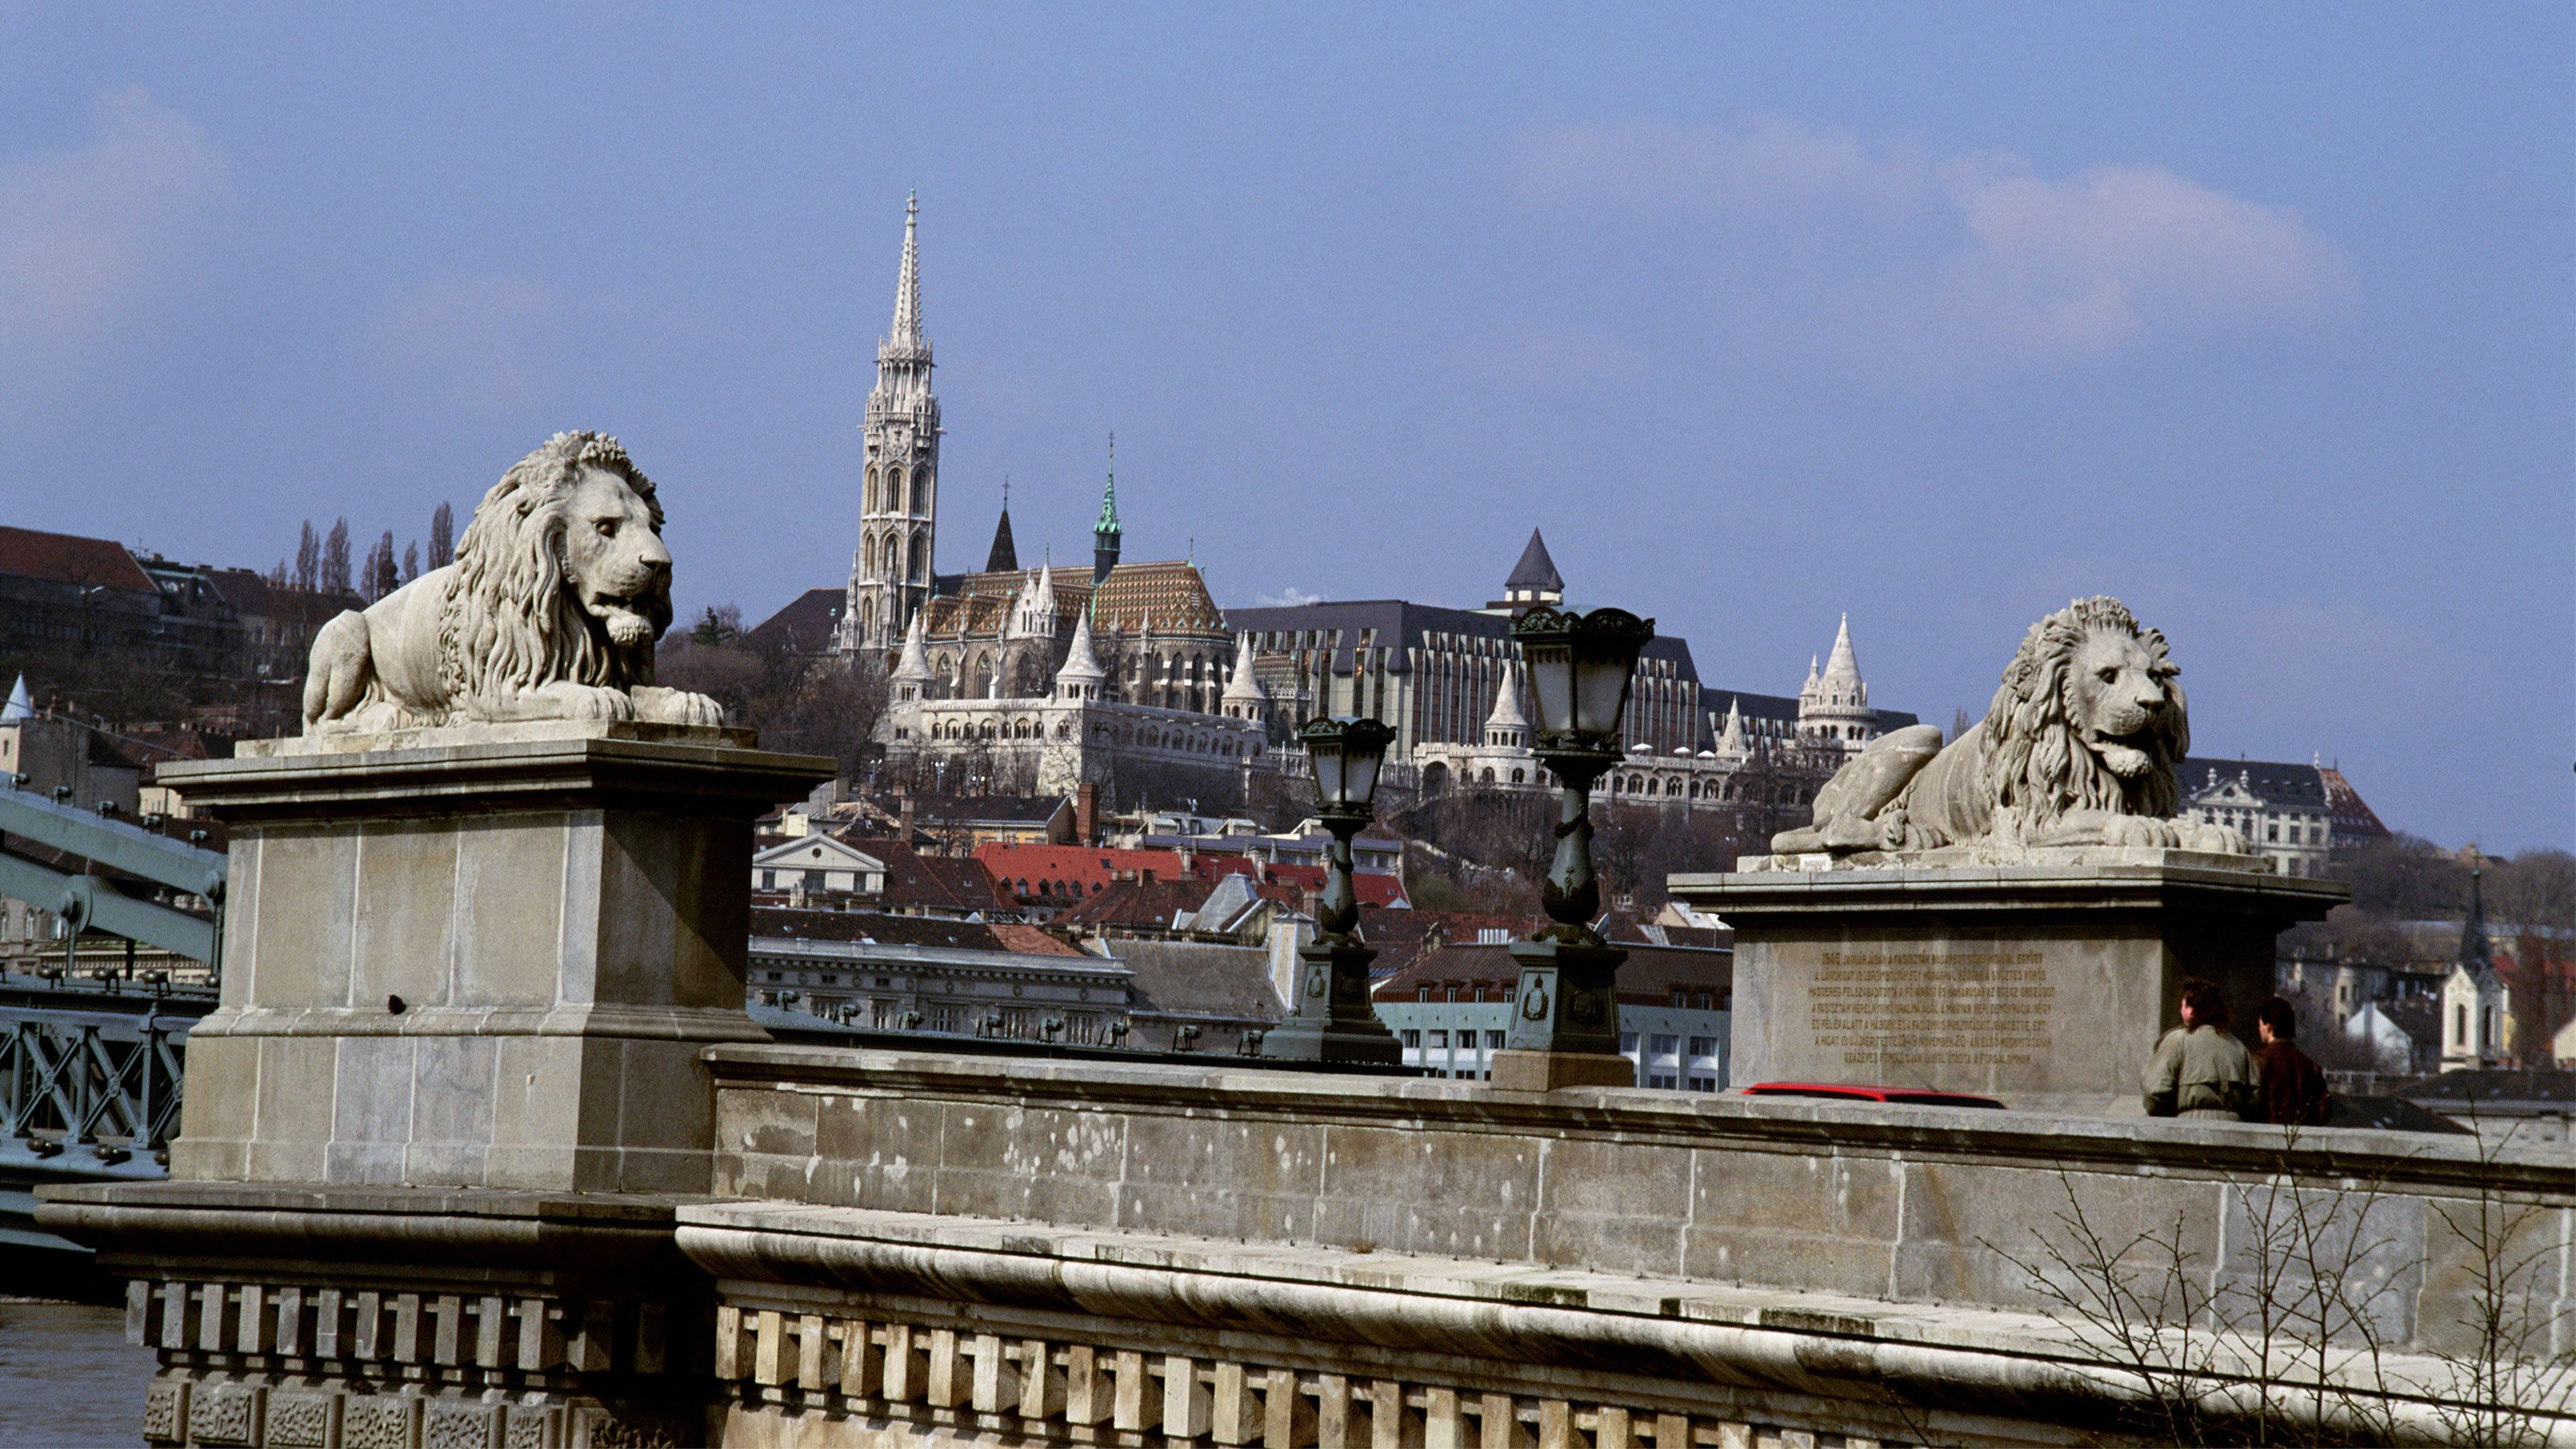 Lions statues perched atop a bridge in Budapest